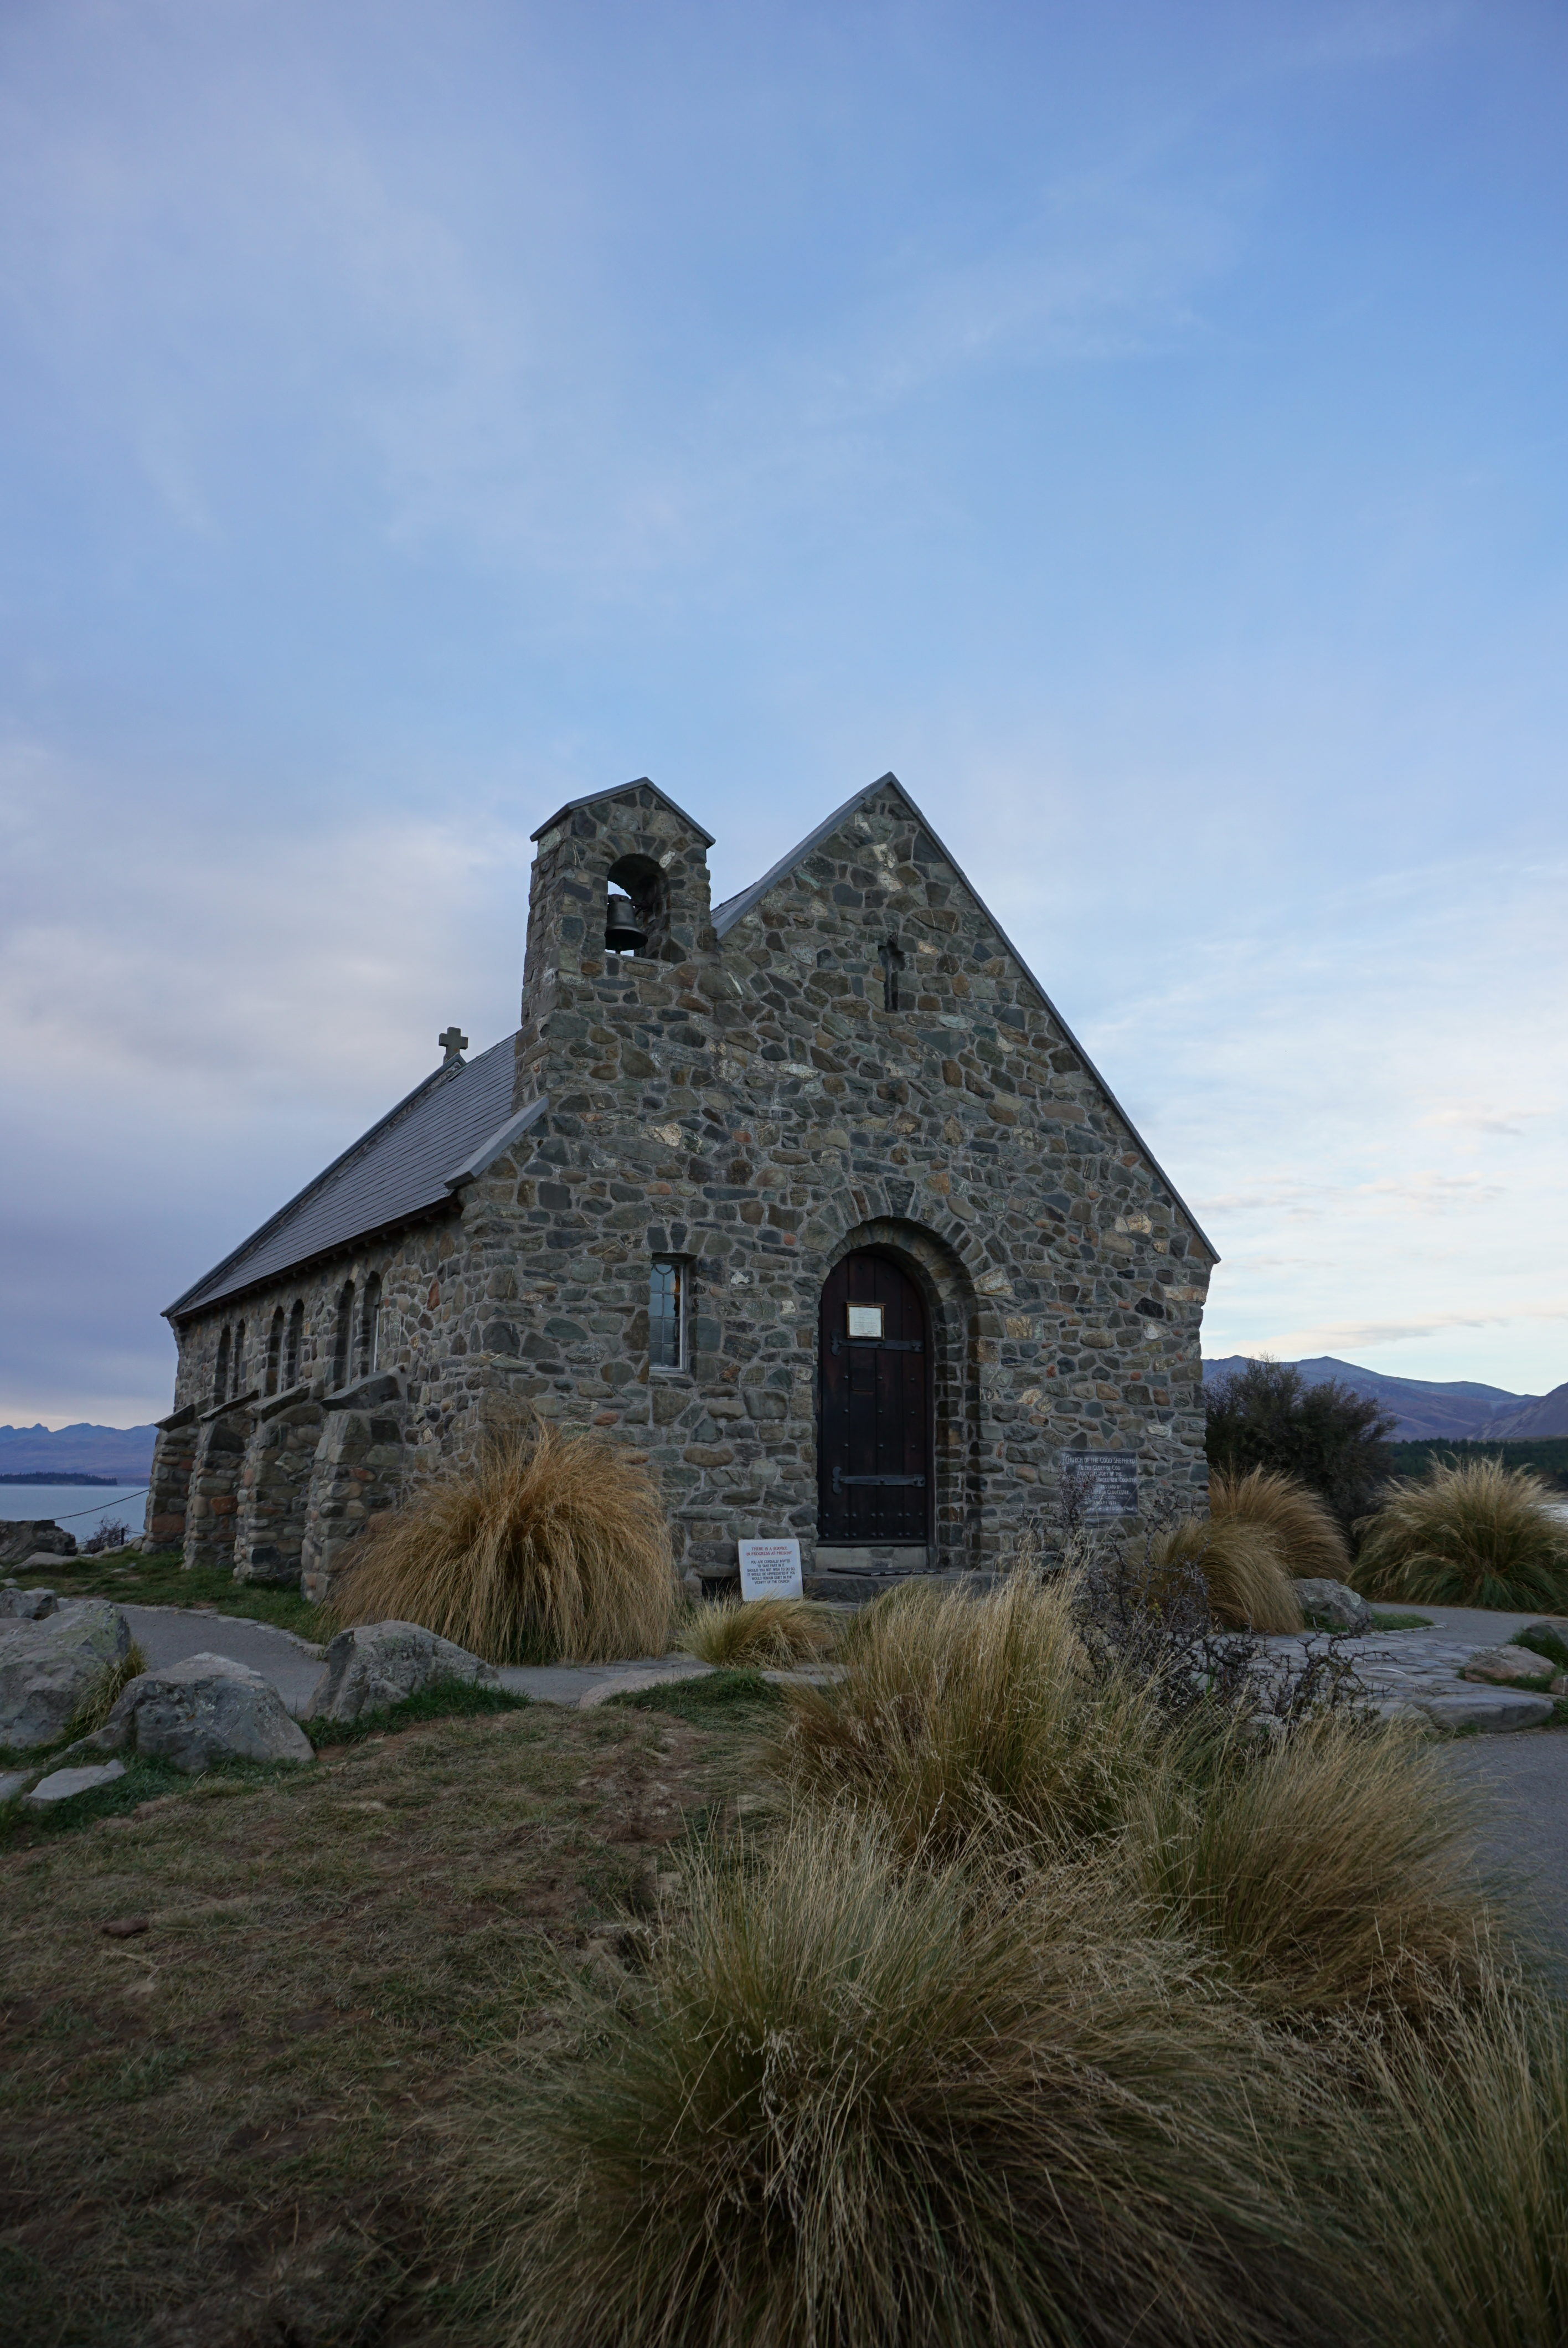 Church of the Good Shepherd, one of the most photographed churches in the country and has a beautiful backdrop of Lake Tekapo